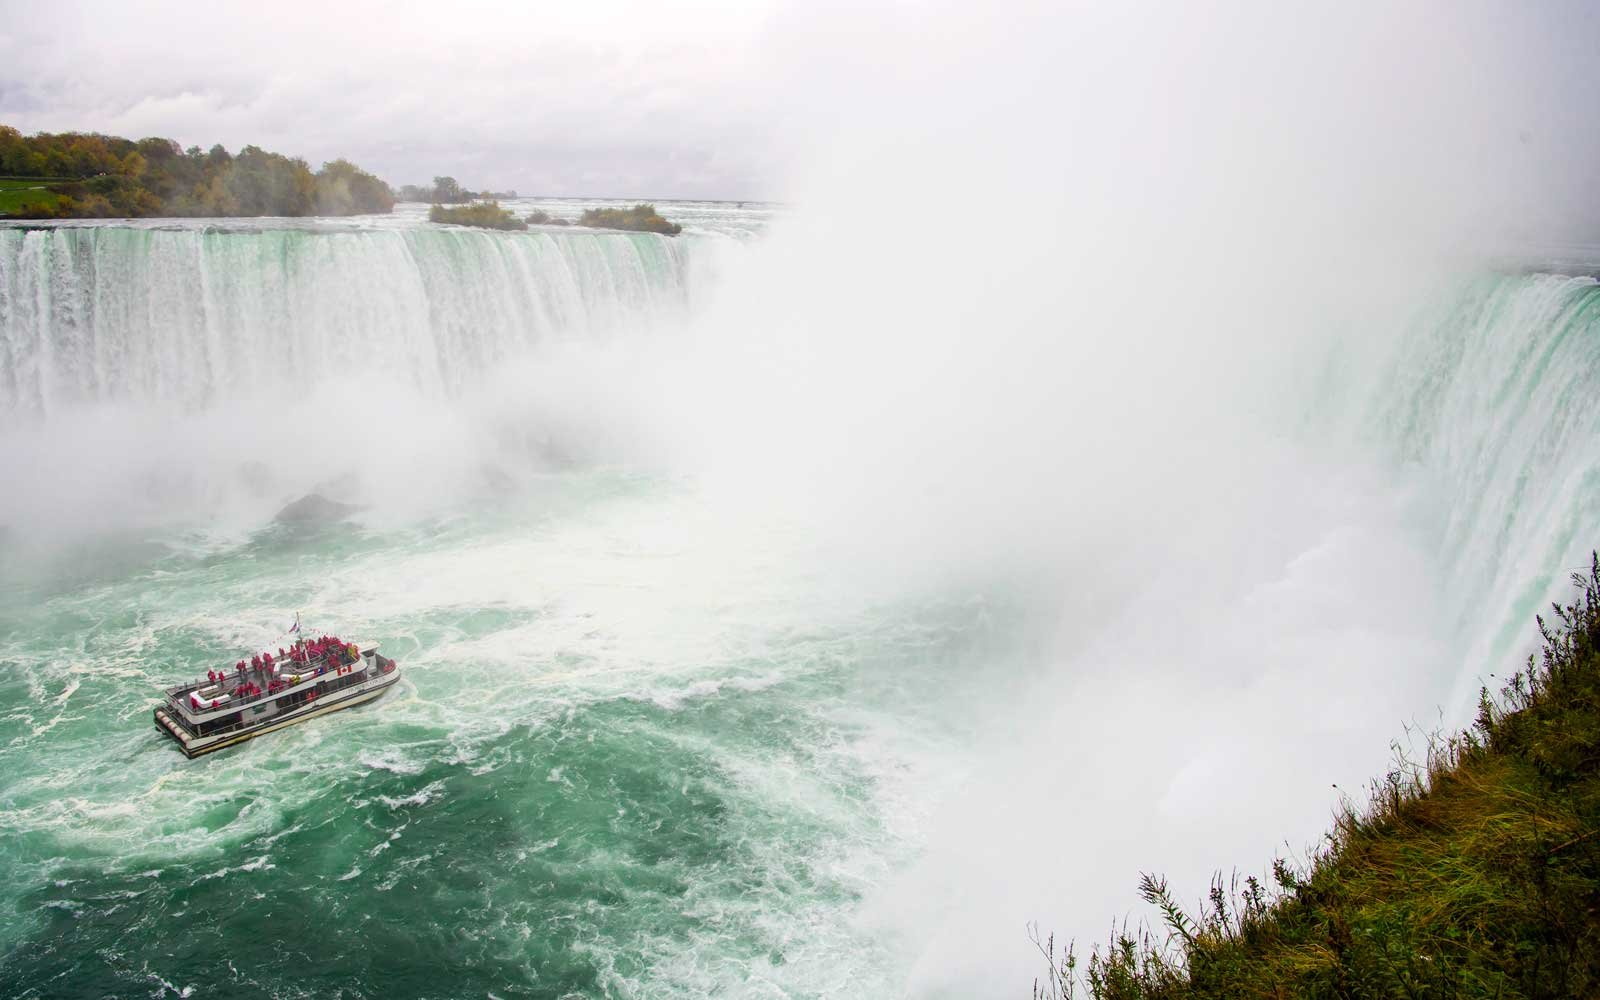 Maid of the Mist at Horseshoe Falls, Canadian side, Niagara Falls